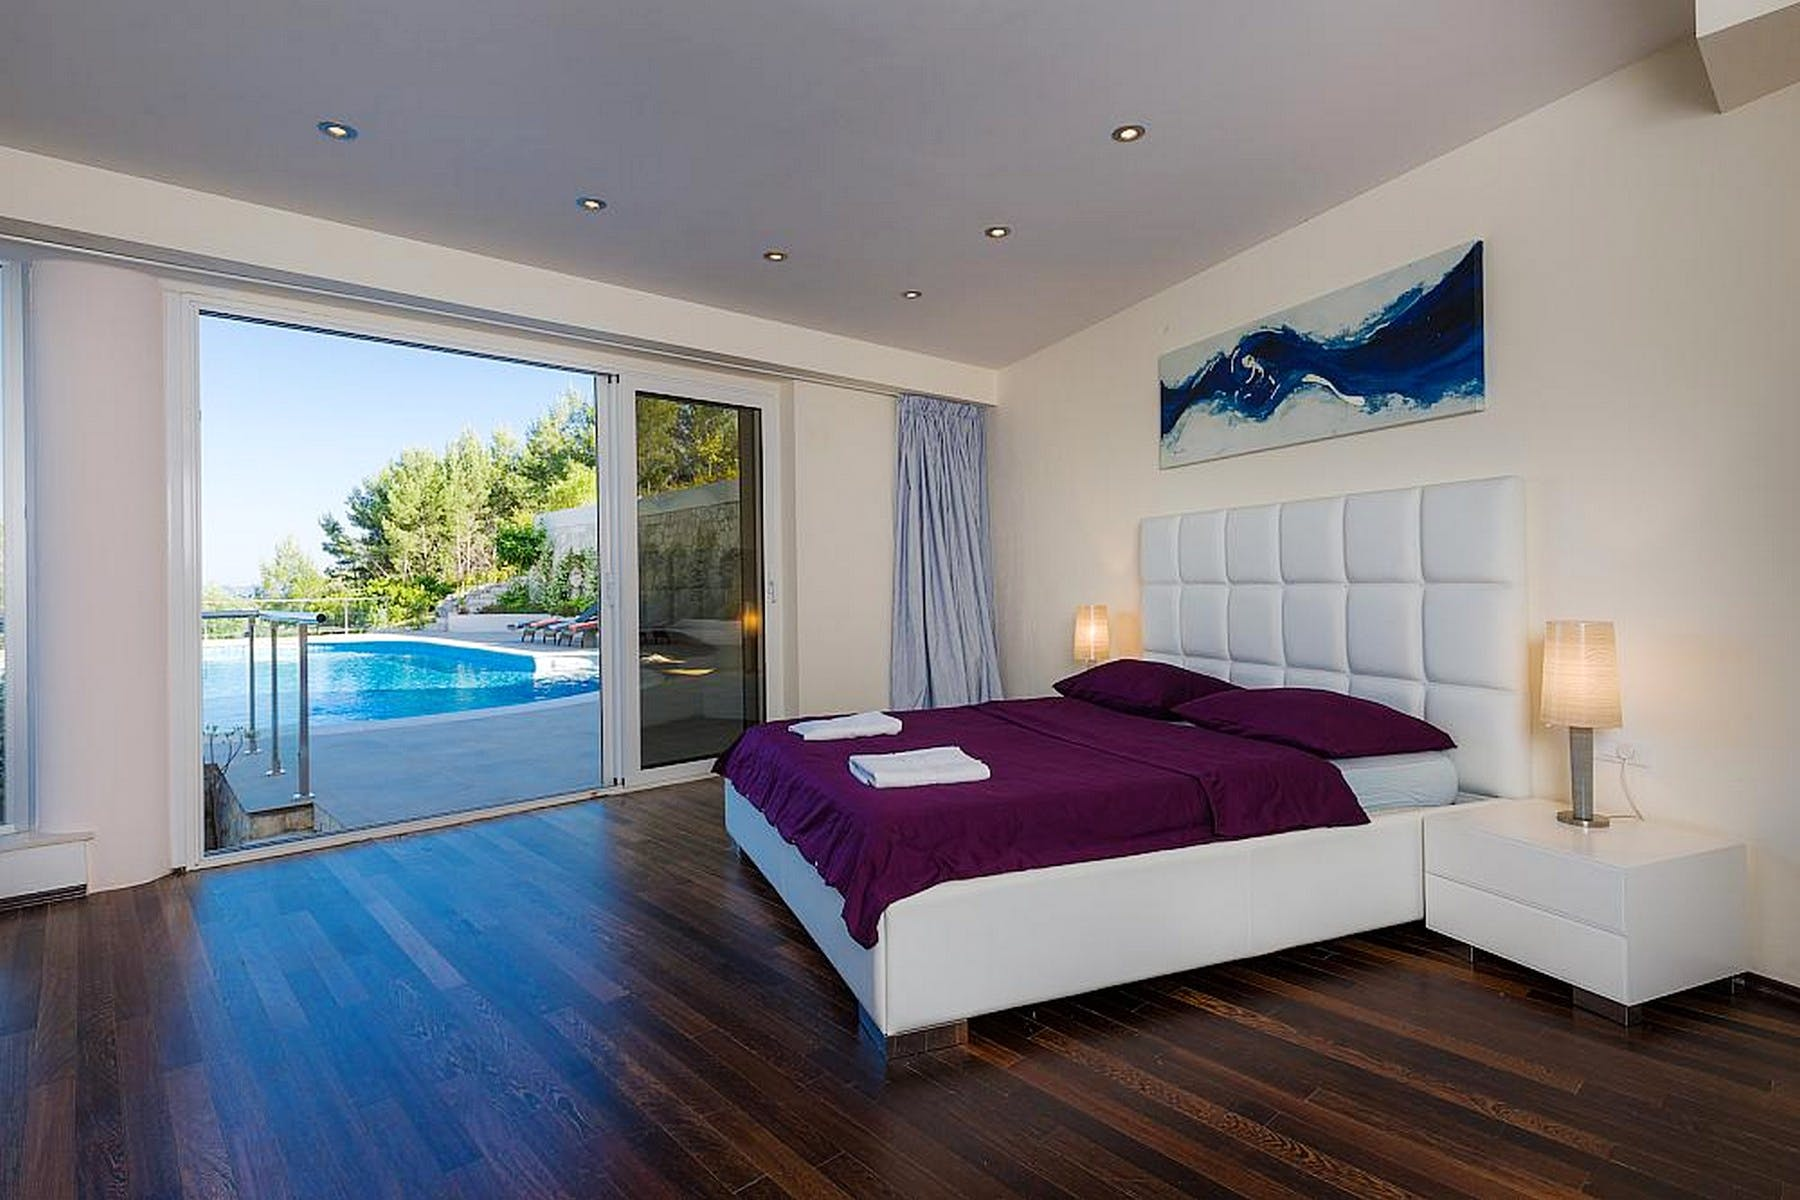 Modern ensuite bedrom with the view